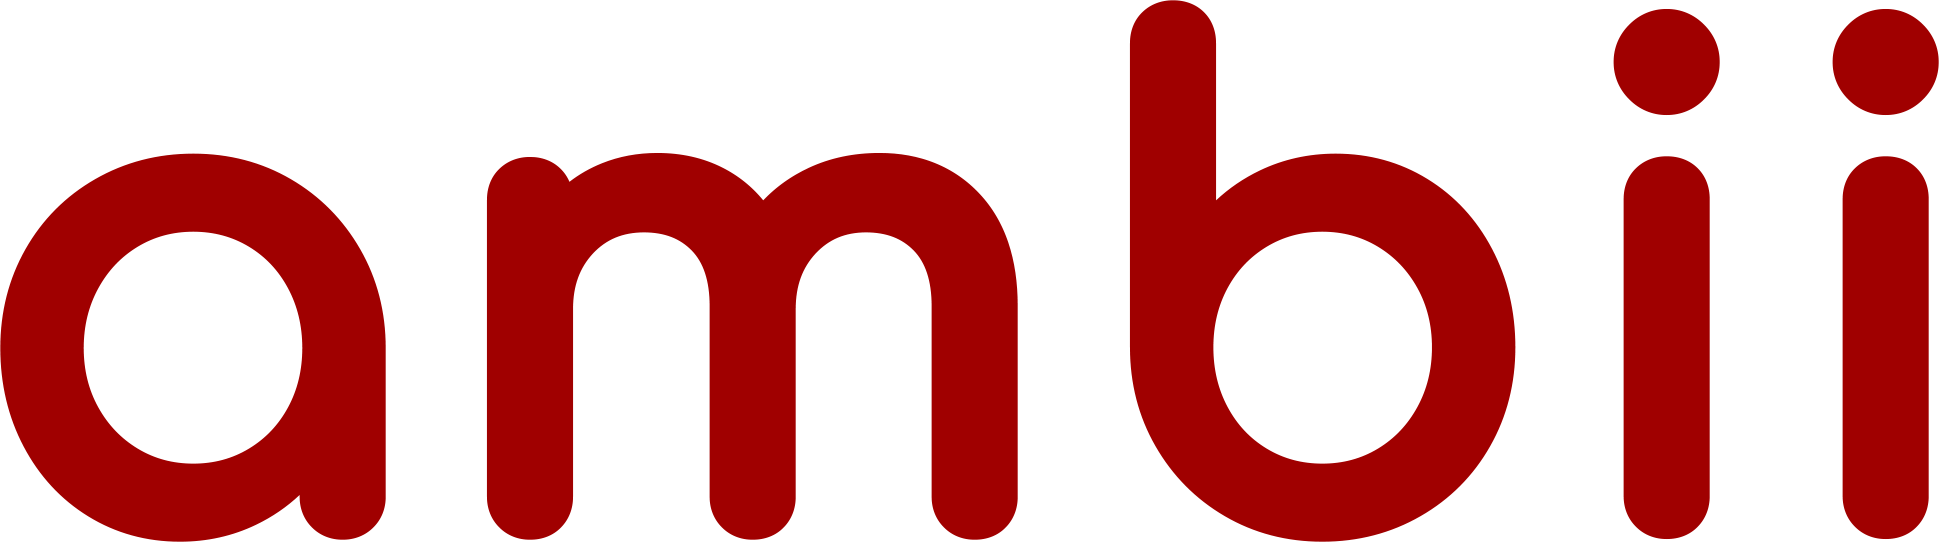 Ambii text logo (red)